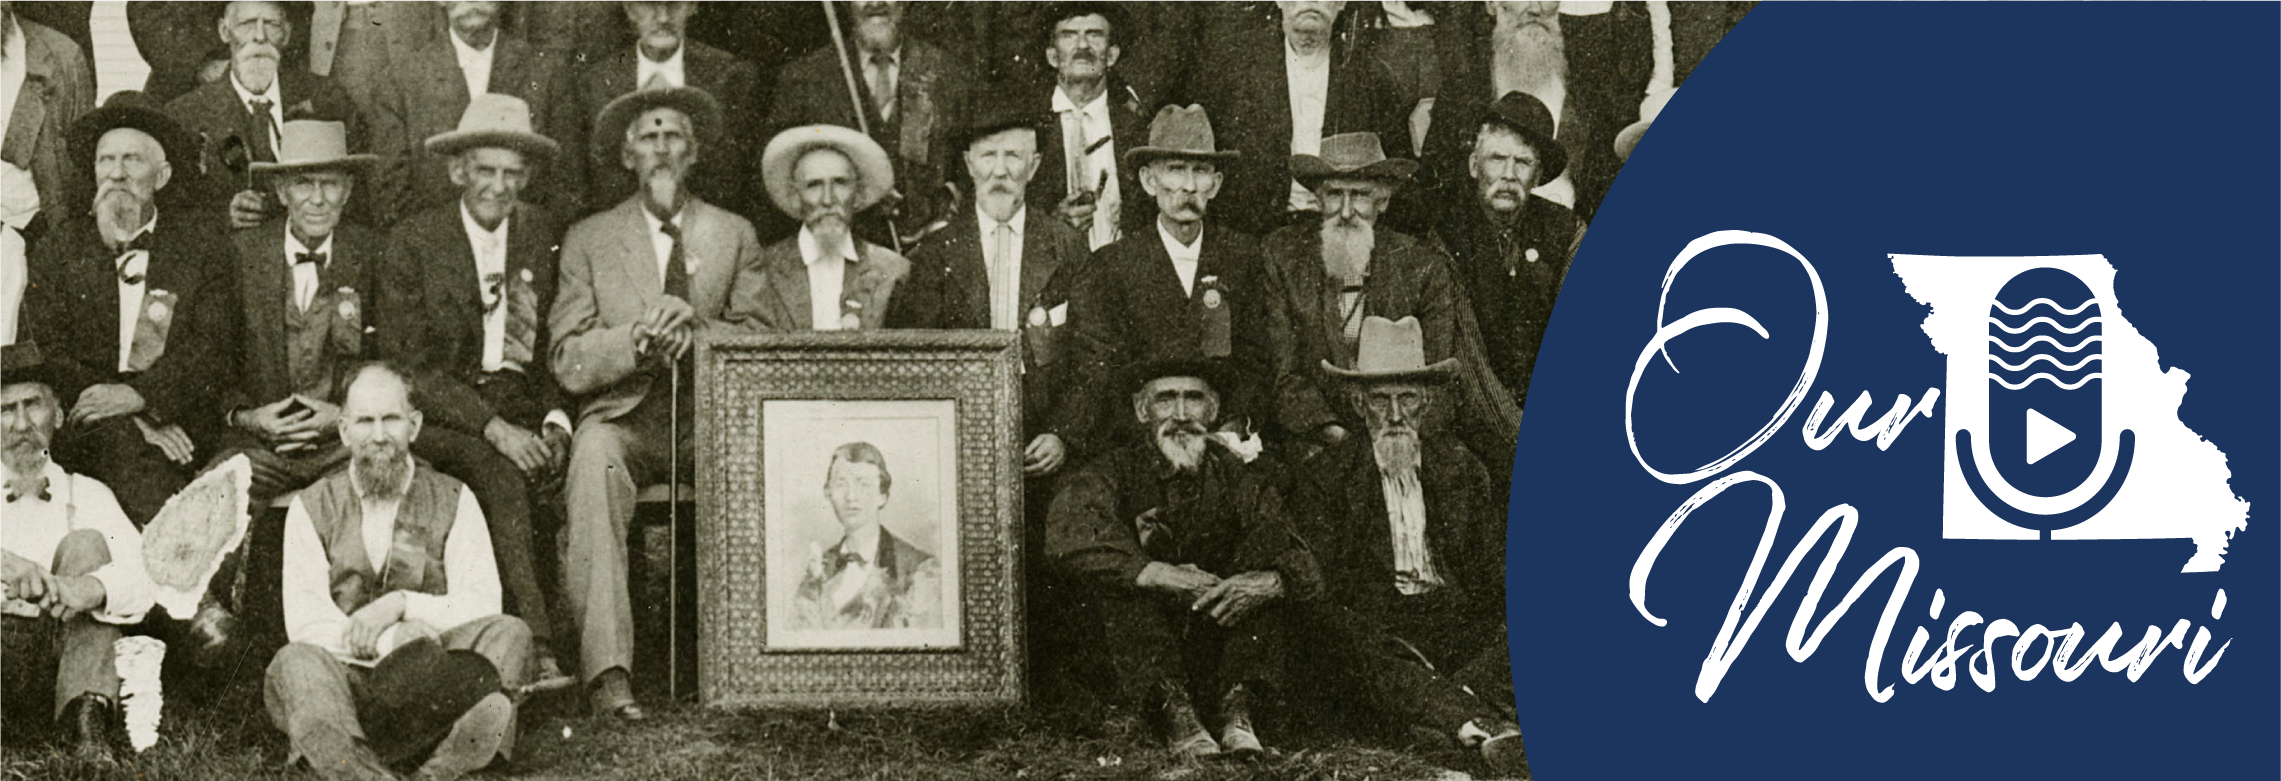 Quantrill's Raiders Reunion, P0010